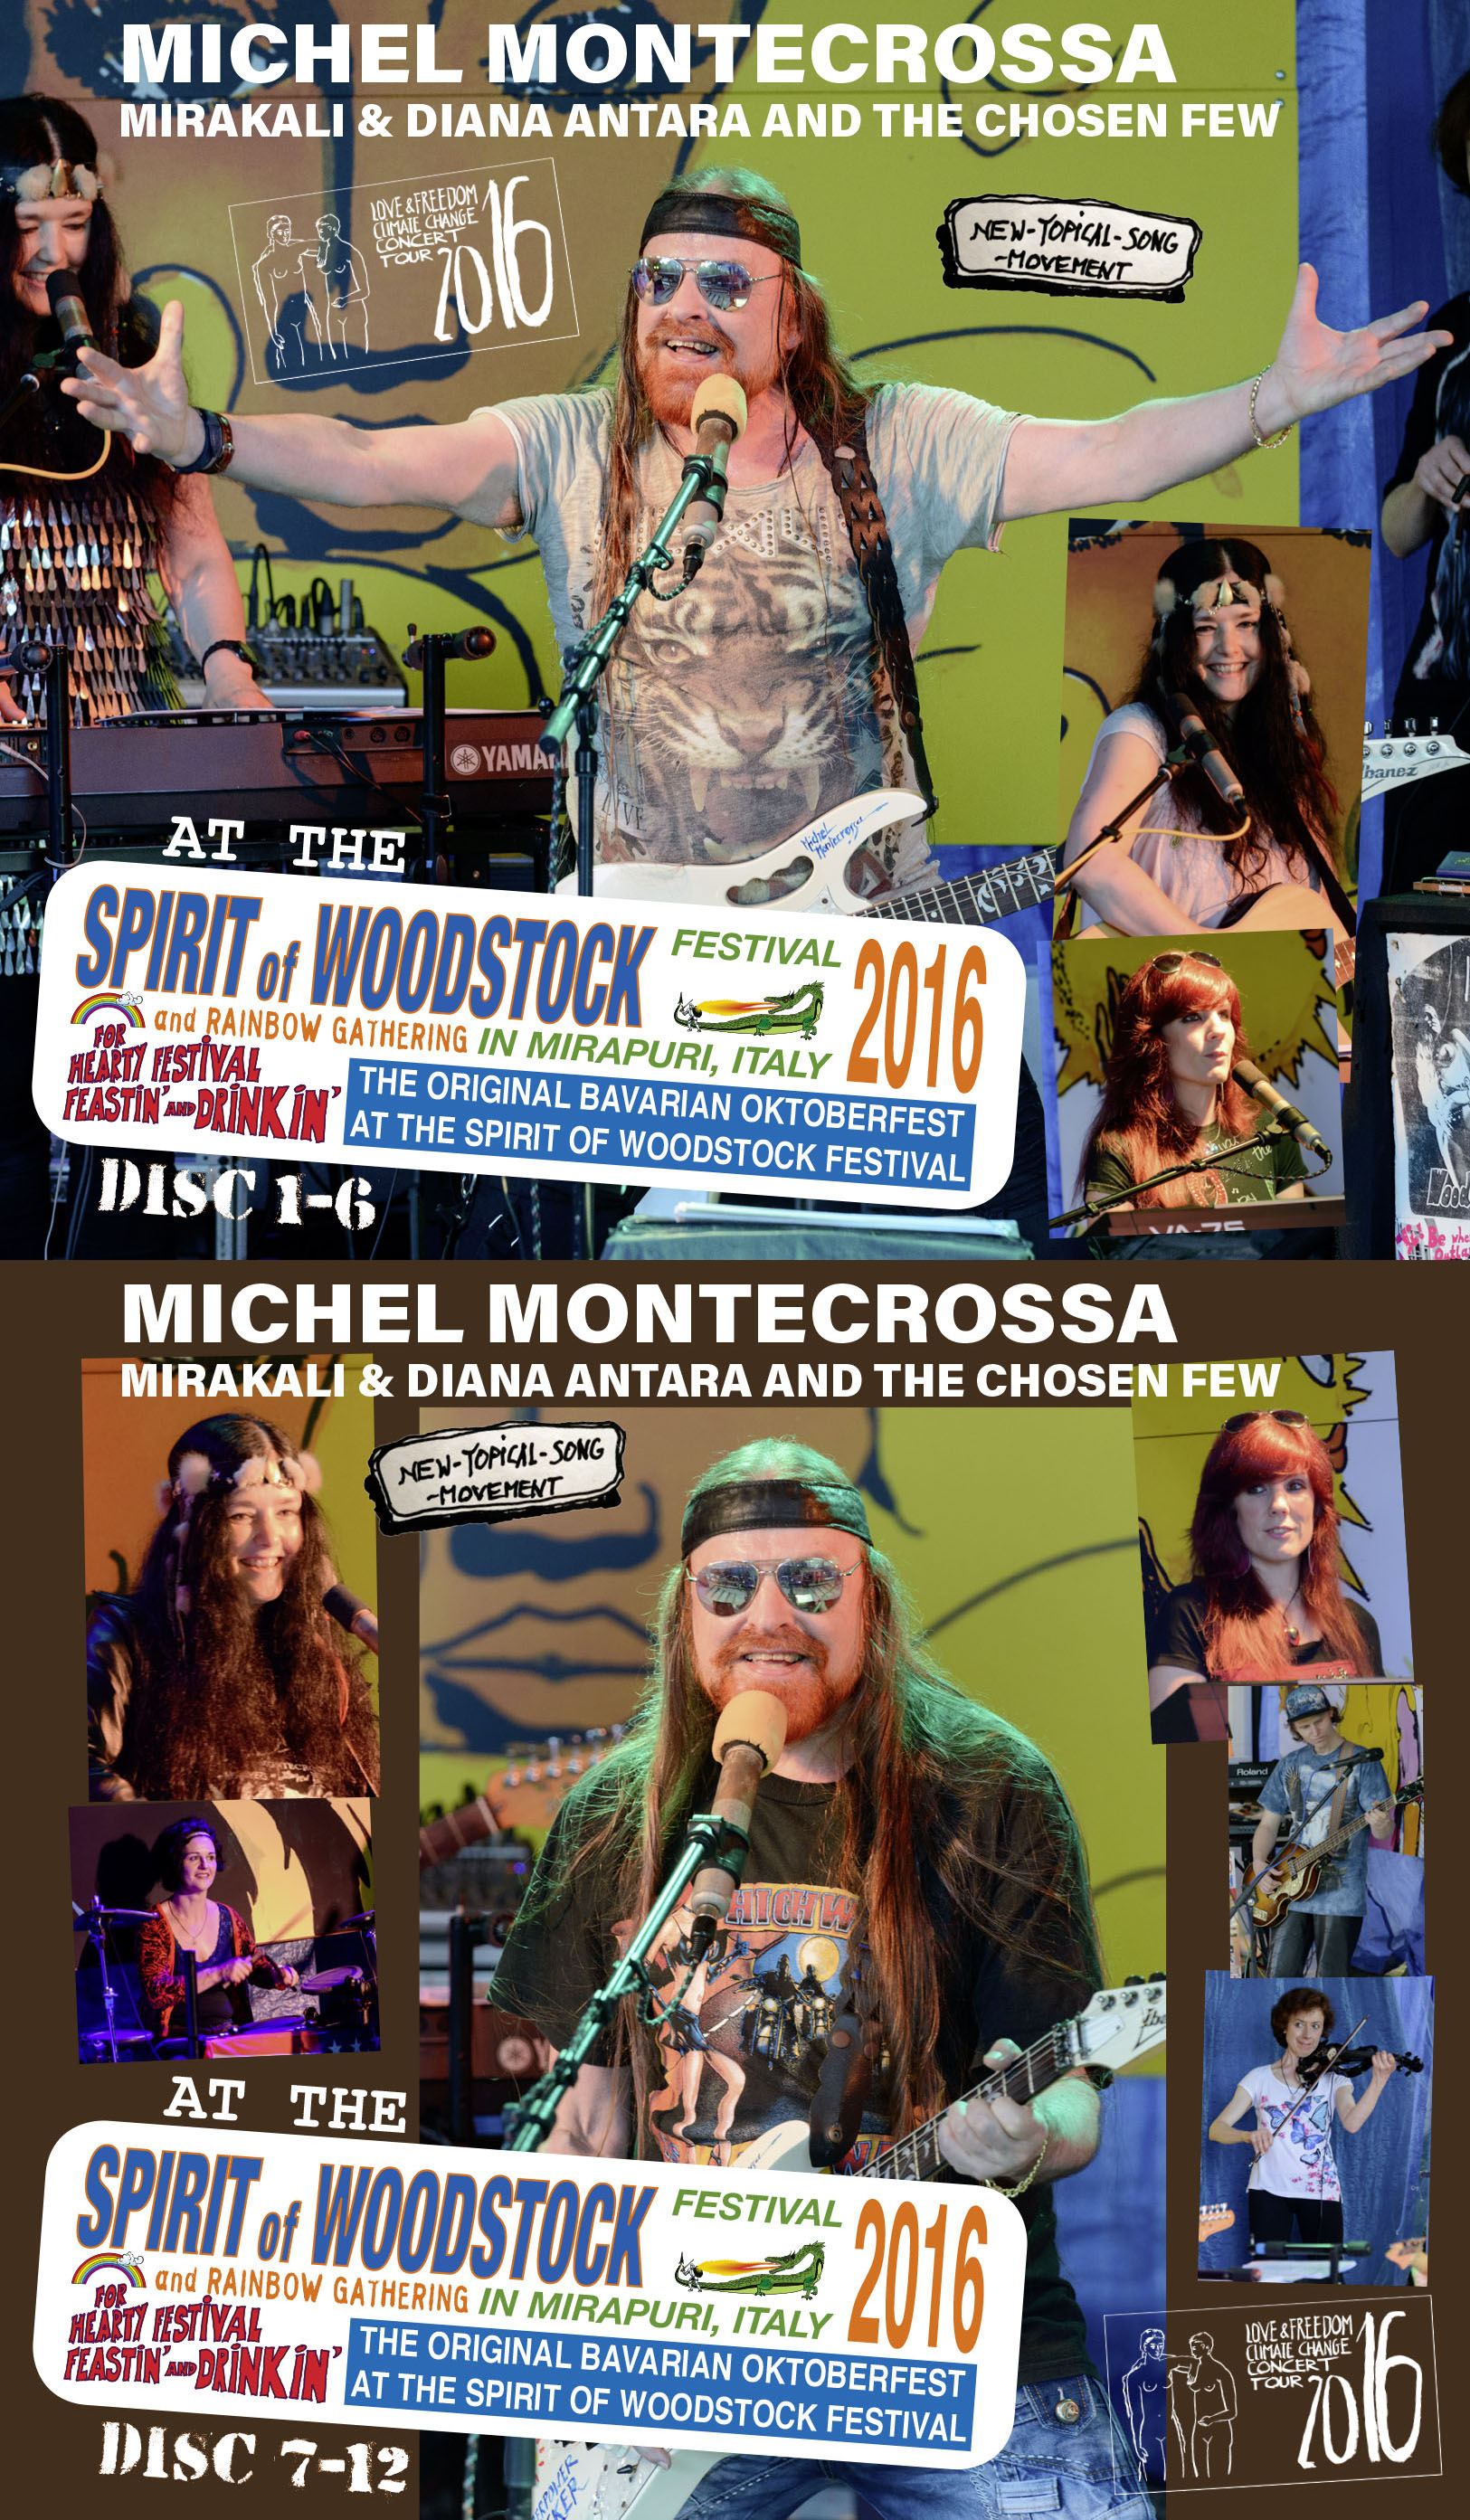 Spirit of Woodstock Festival 2016 in Mirapuri, Italy